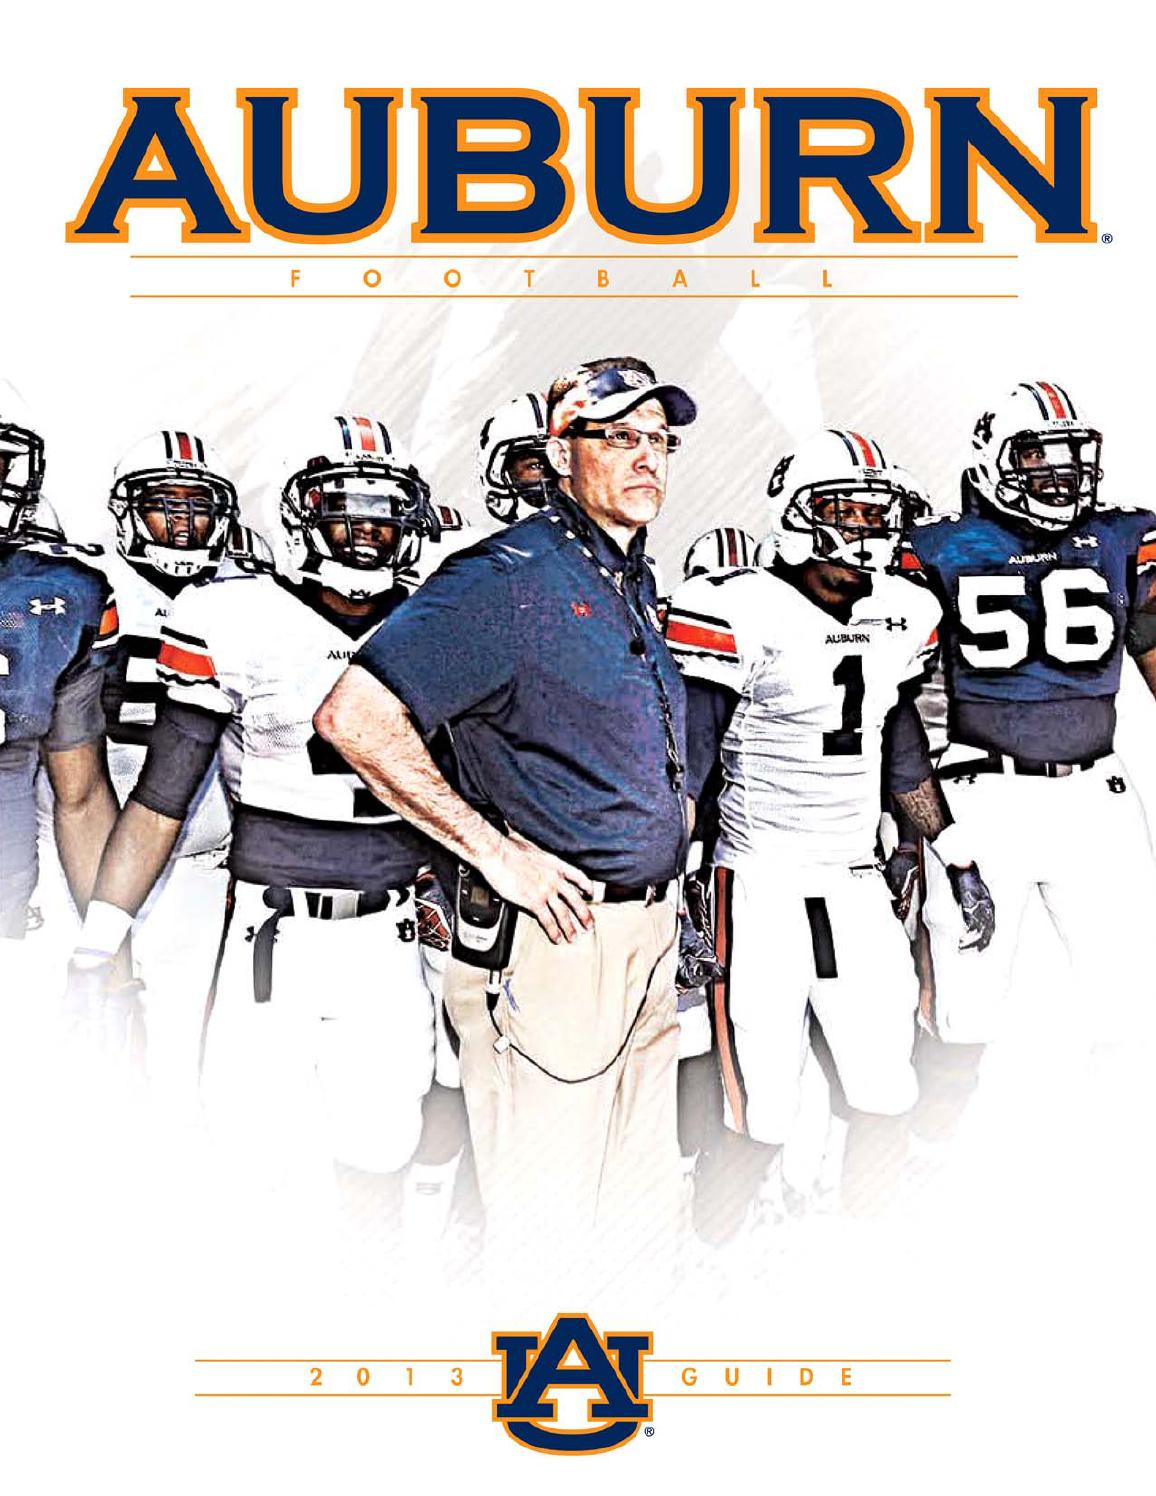 9ba3e9bd 2013 Auburn Football Guide by Auburn Athletics Department - issuu